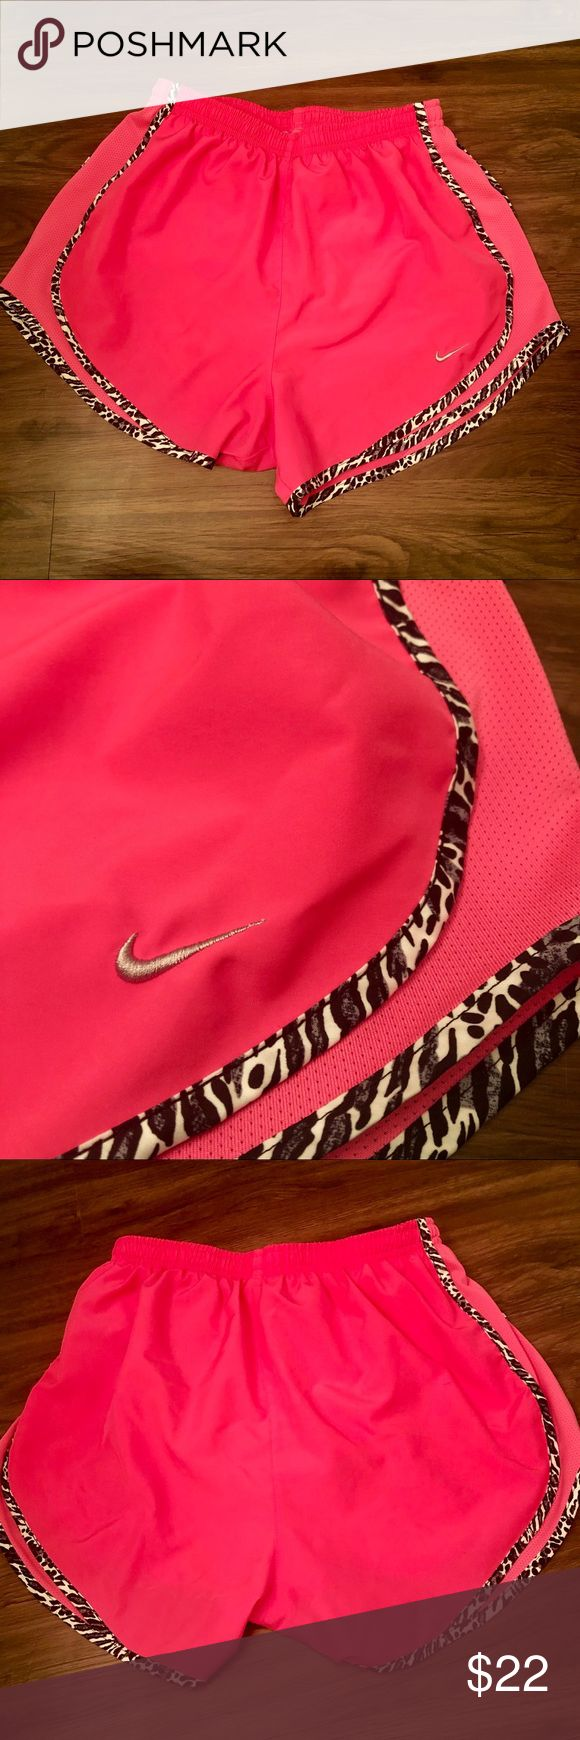 Pink Cheetah Nike Shorts Nike Drifit-Laufshorts. Kleine Größe. Hellrosa mit …   – Check Out these closets!